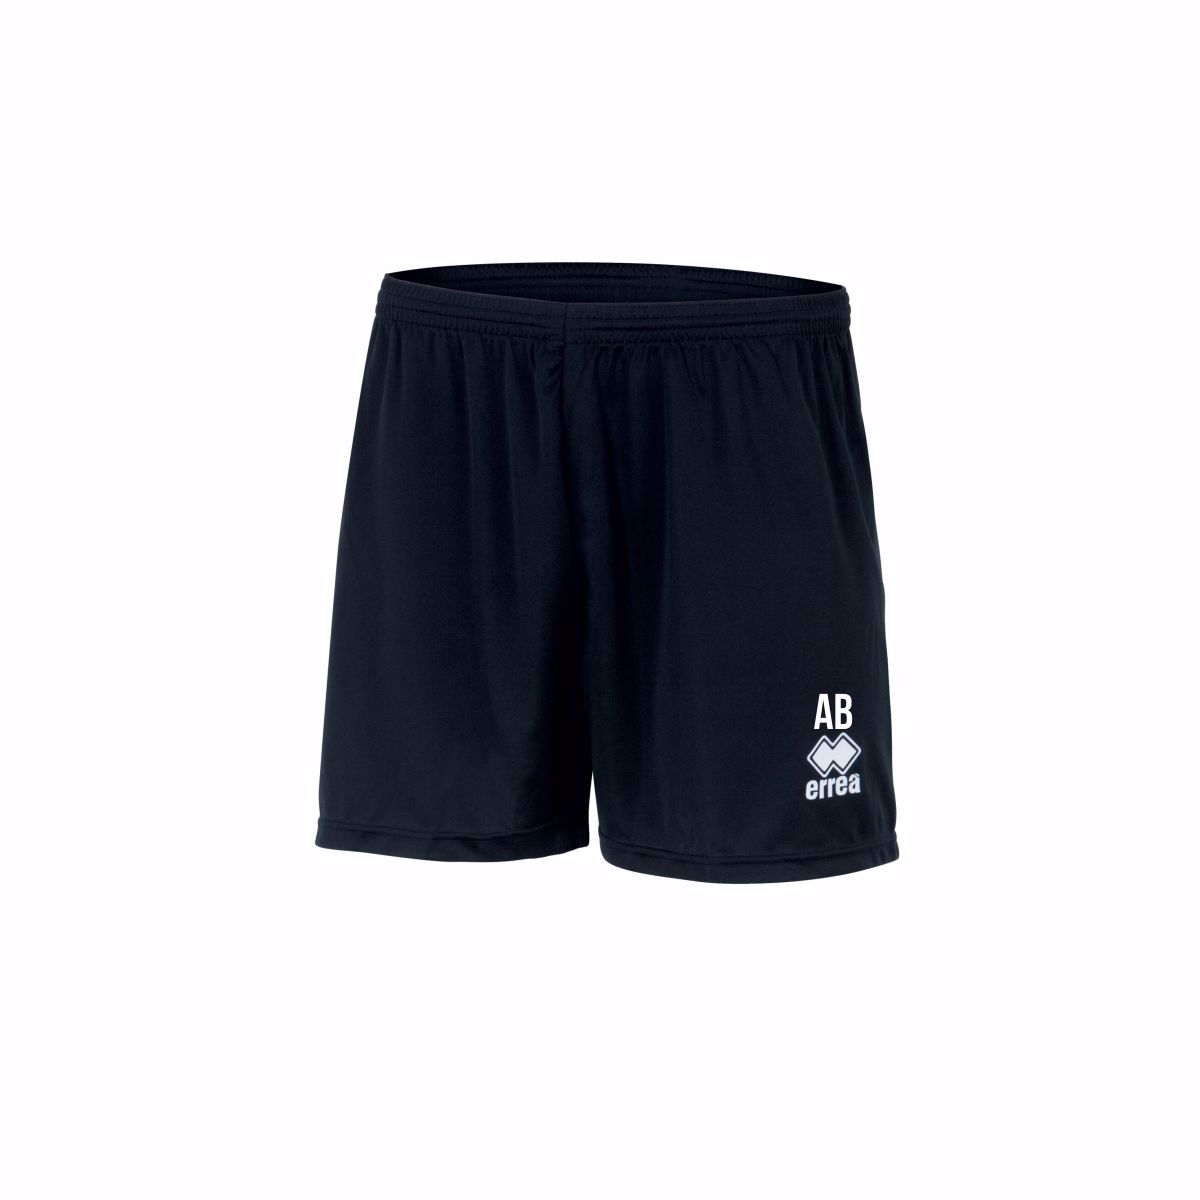 BISHOPS LYDEARDS FC New Skin Training Shorts - Black Adult